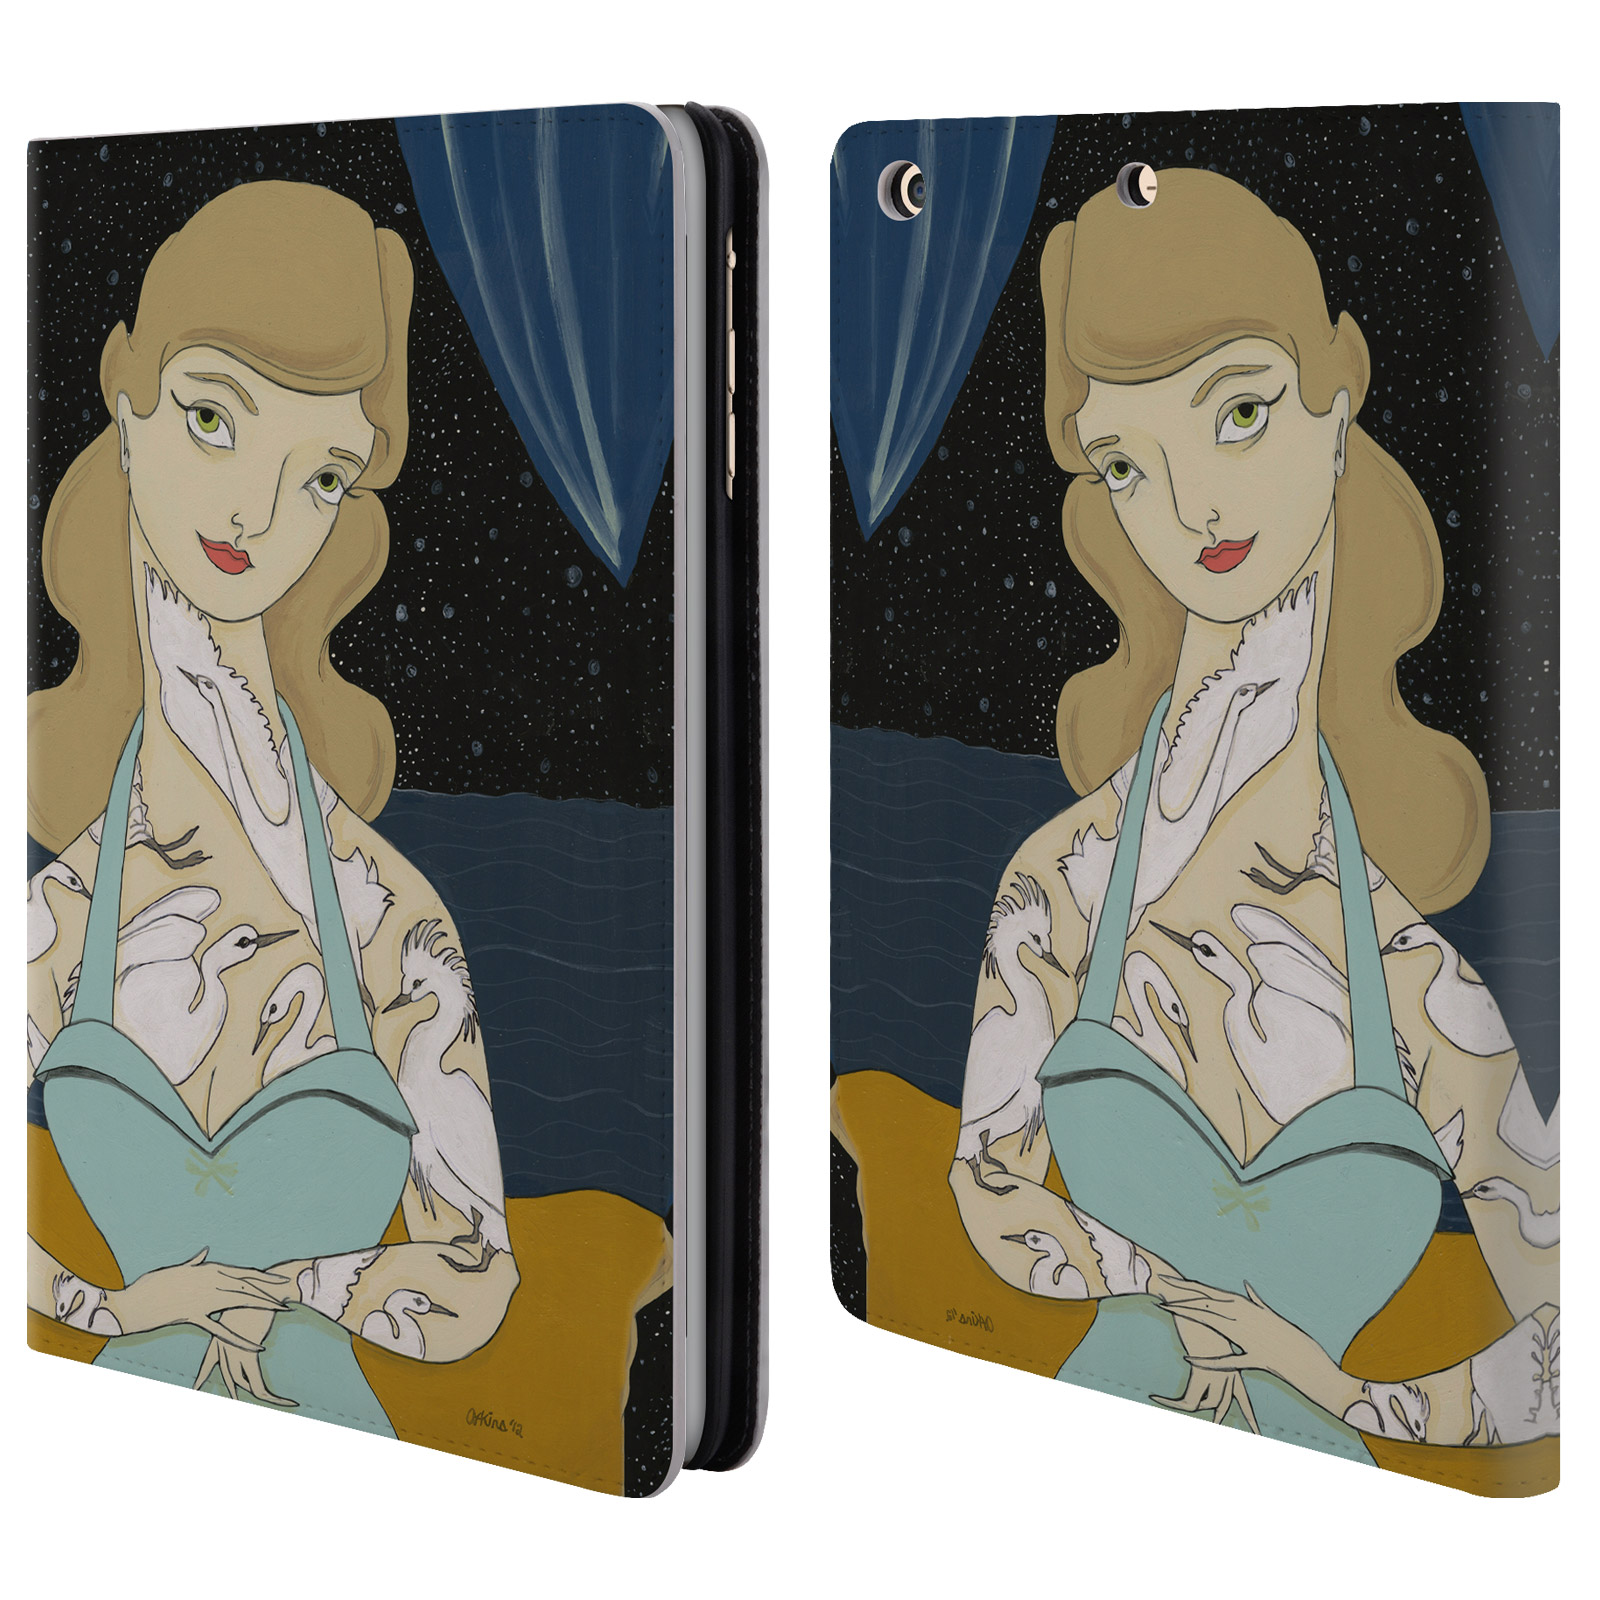 OFFICIAL AMANDA LAUREL ATKINS LADIES LEATHER BOOK WALLET CASE COVER FOR APPLE IPAD